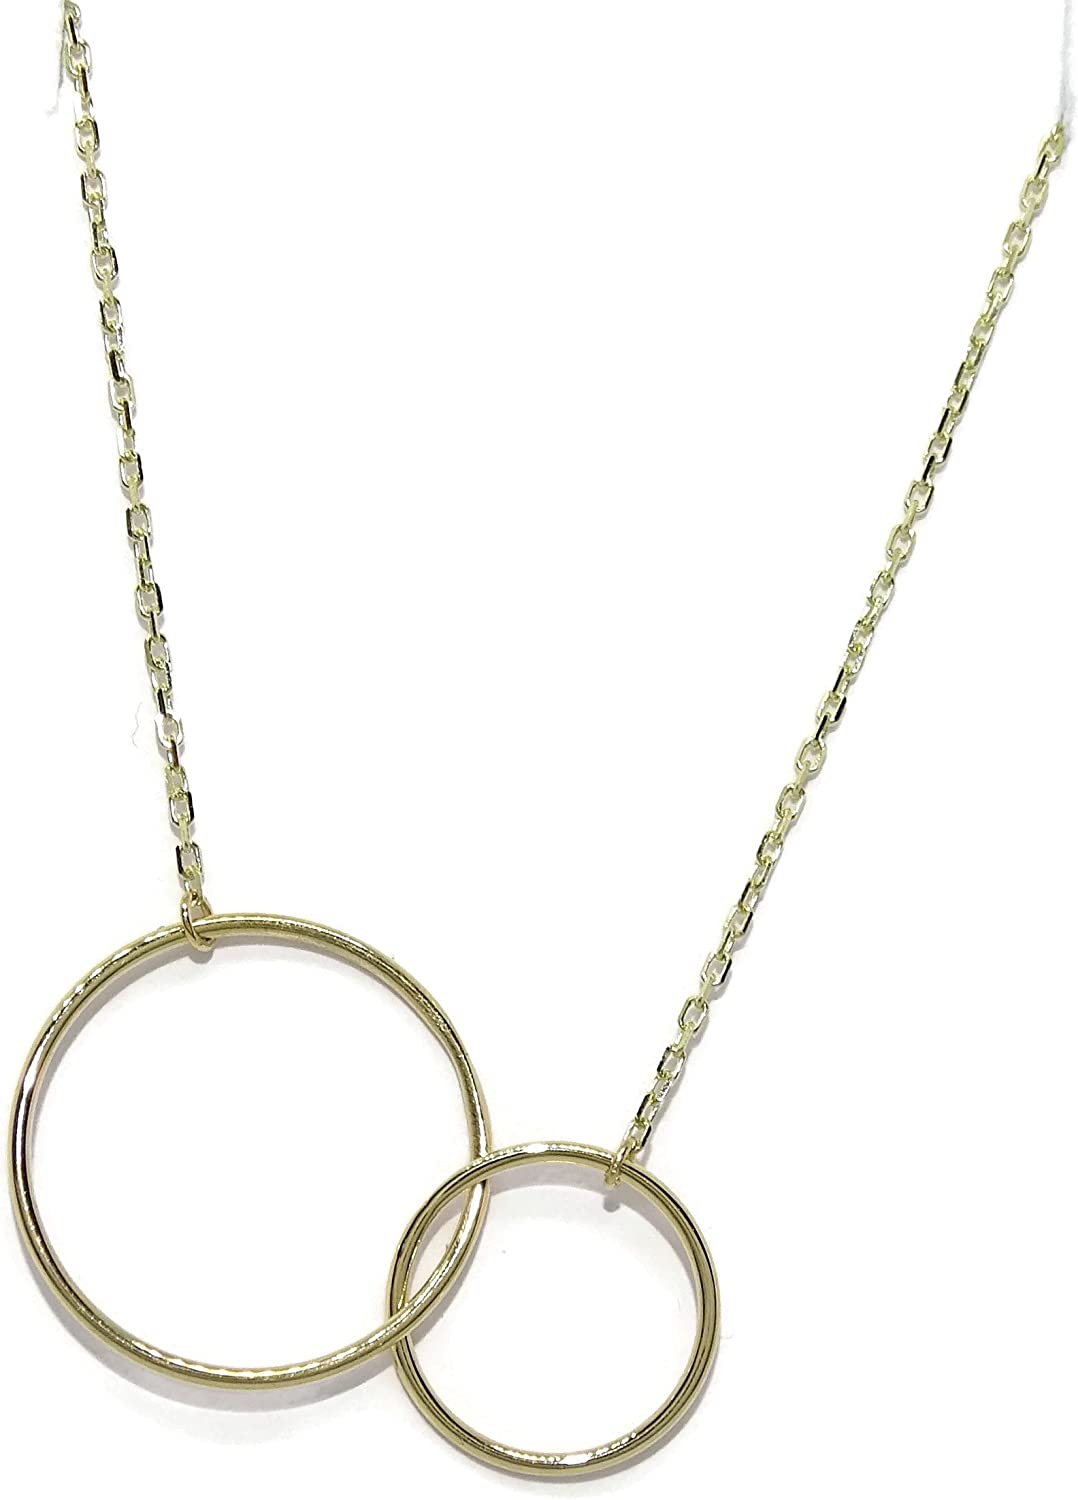 Never say Never 18K Gold Double Ring Collar Necklace Women | Karma Circle Round Pendant Charm Chain 45cm long | Meaningful Jewelry for Her | Made in Italy |